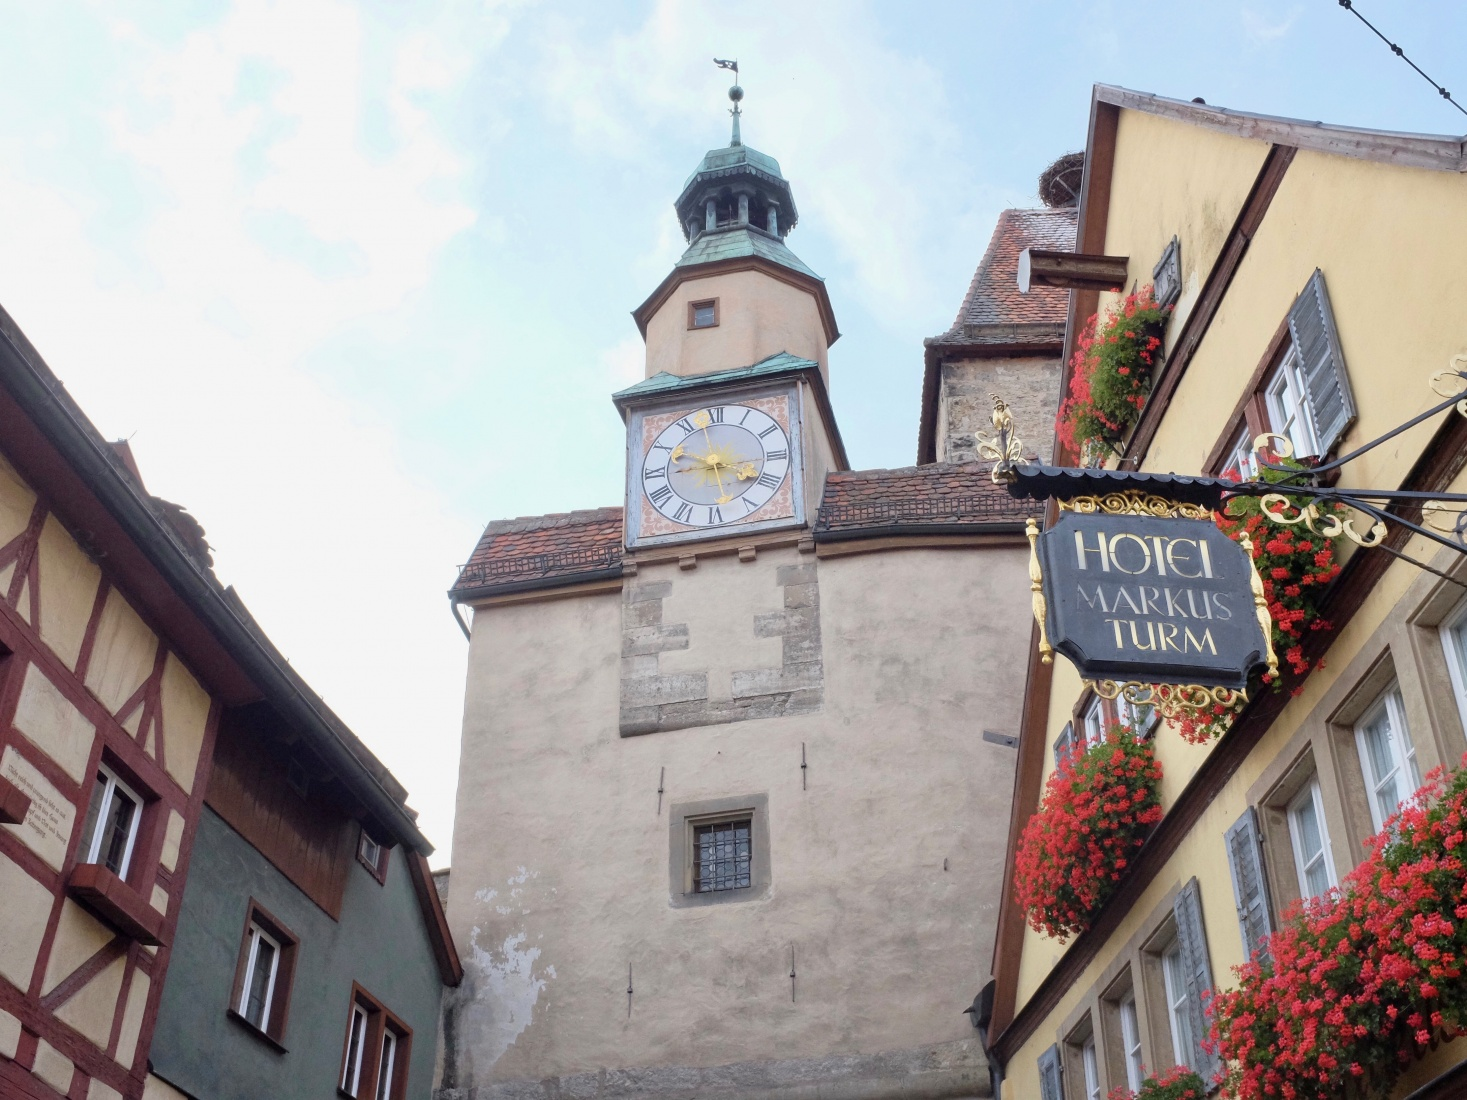 The town center in the medieval town of Rothenburg ob der Tauber, Germany, along the country's Romantic Road.